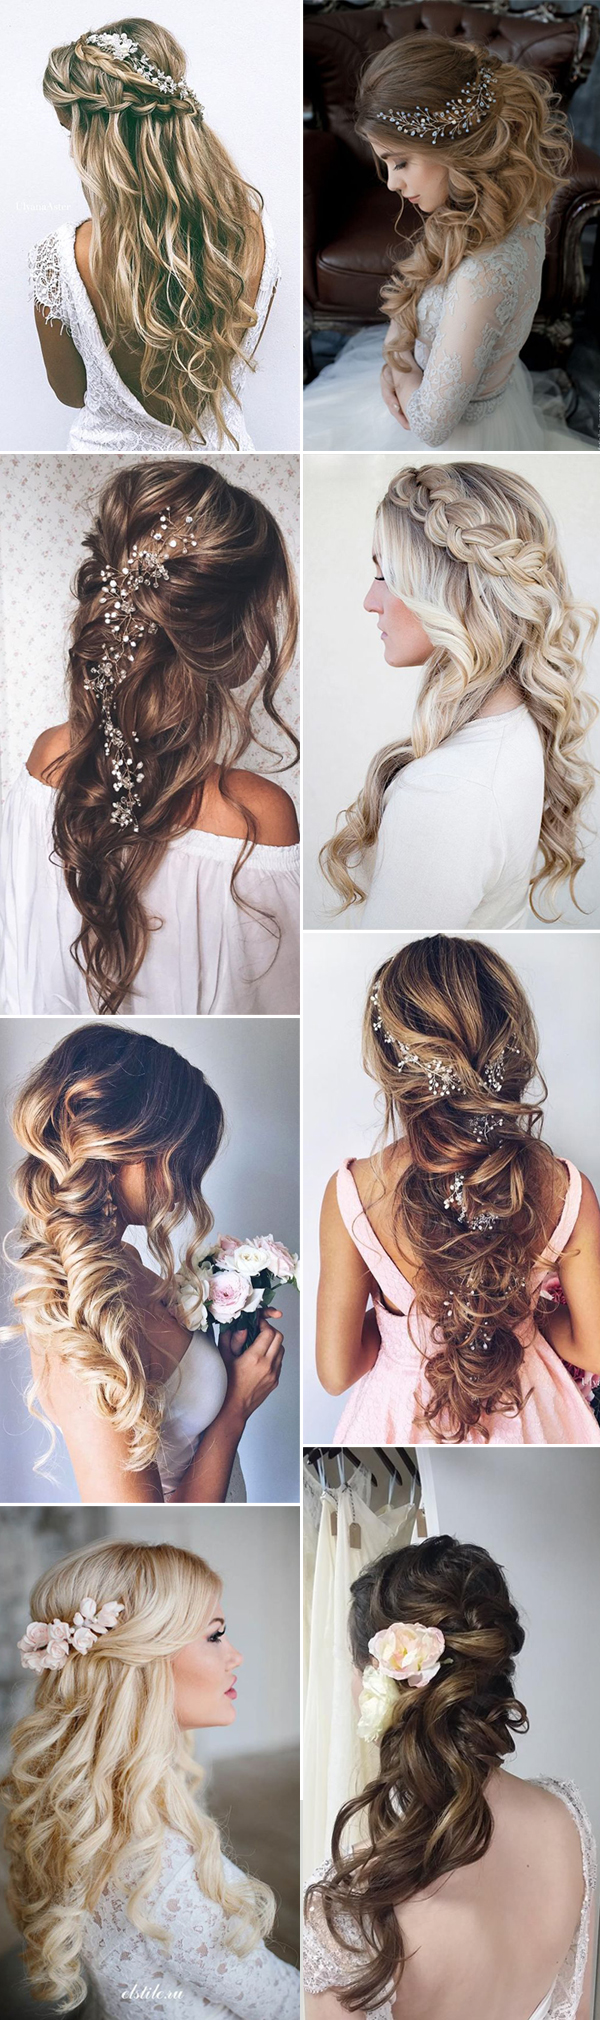 2017-wedding-long-hairstyles-for-brides